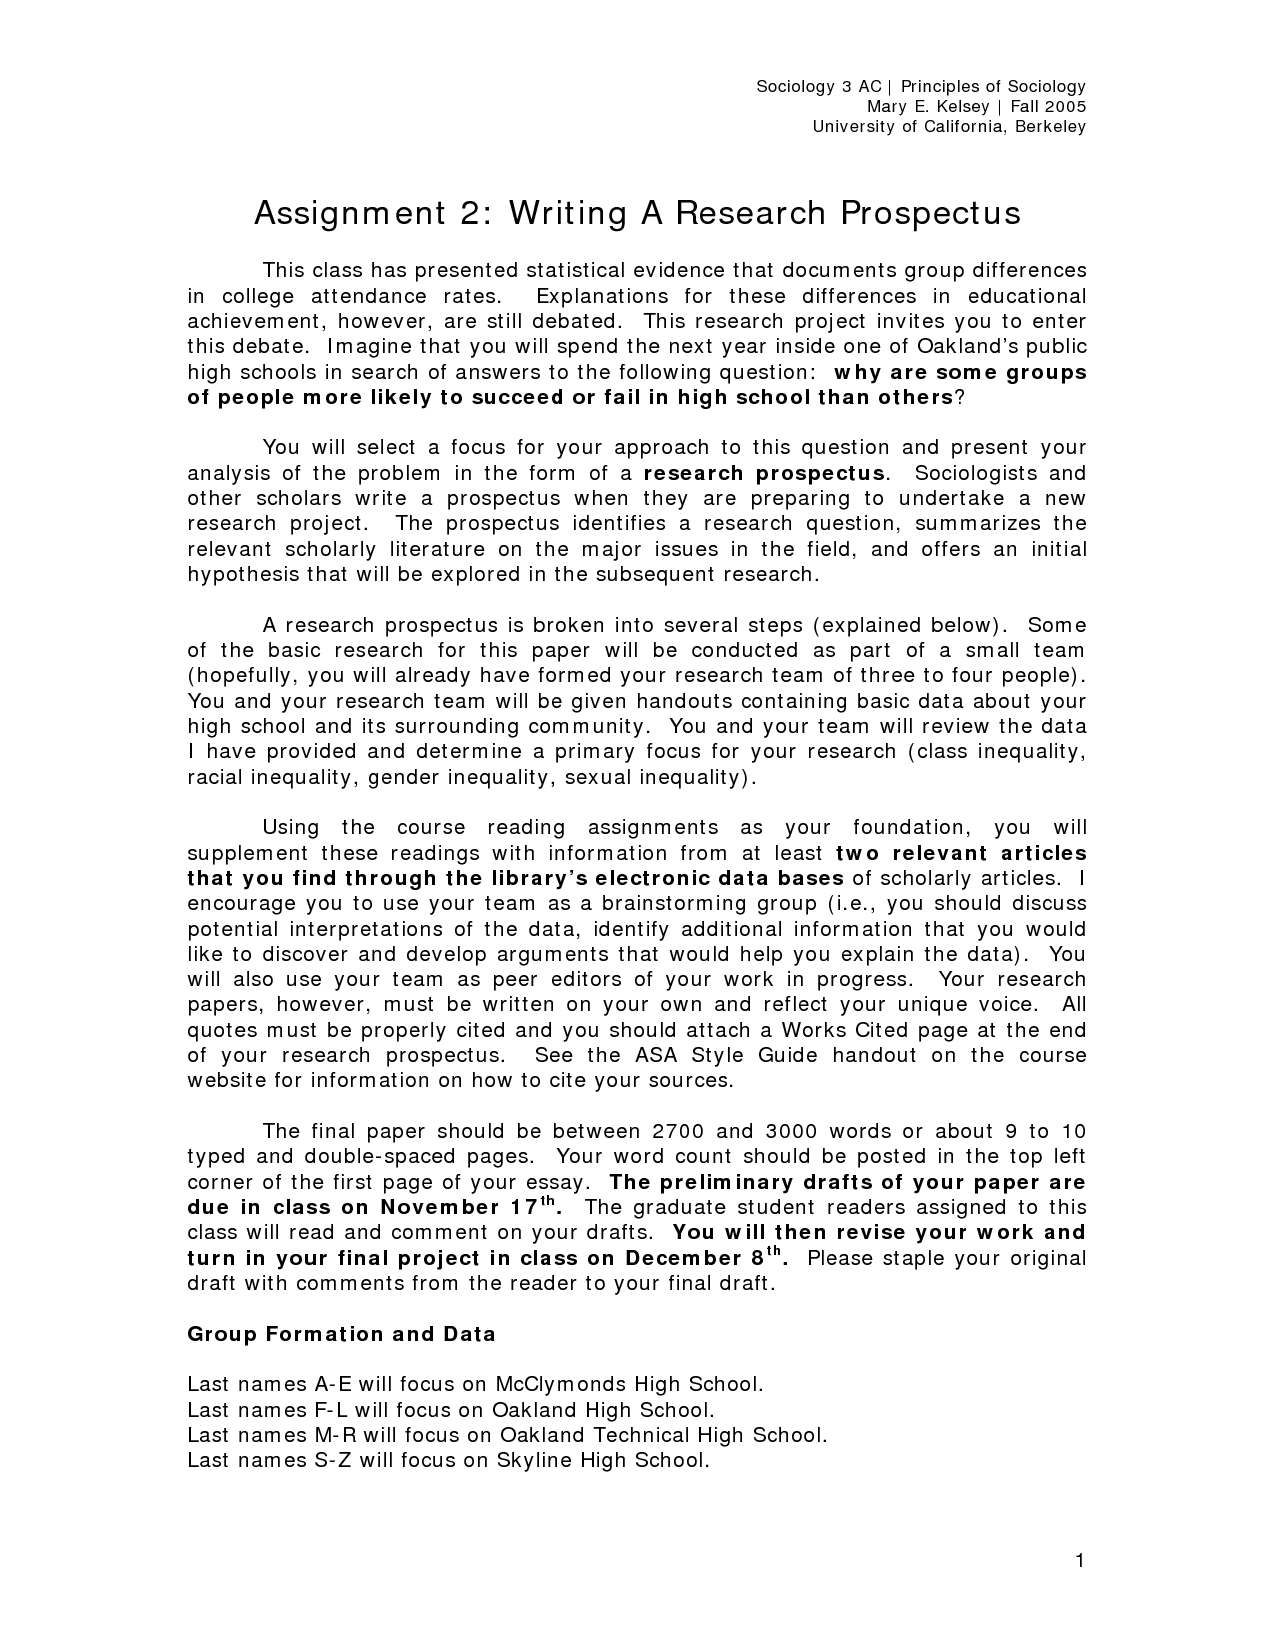 essay writing footnotes average length literature review  essay writing footnotes